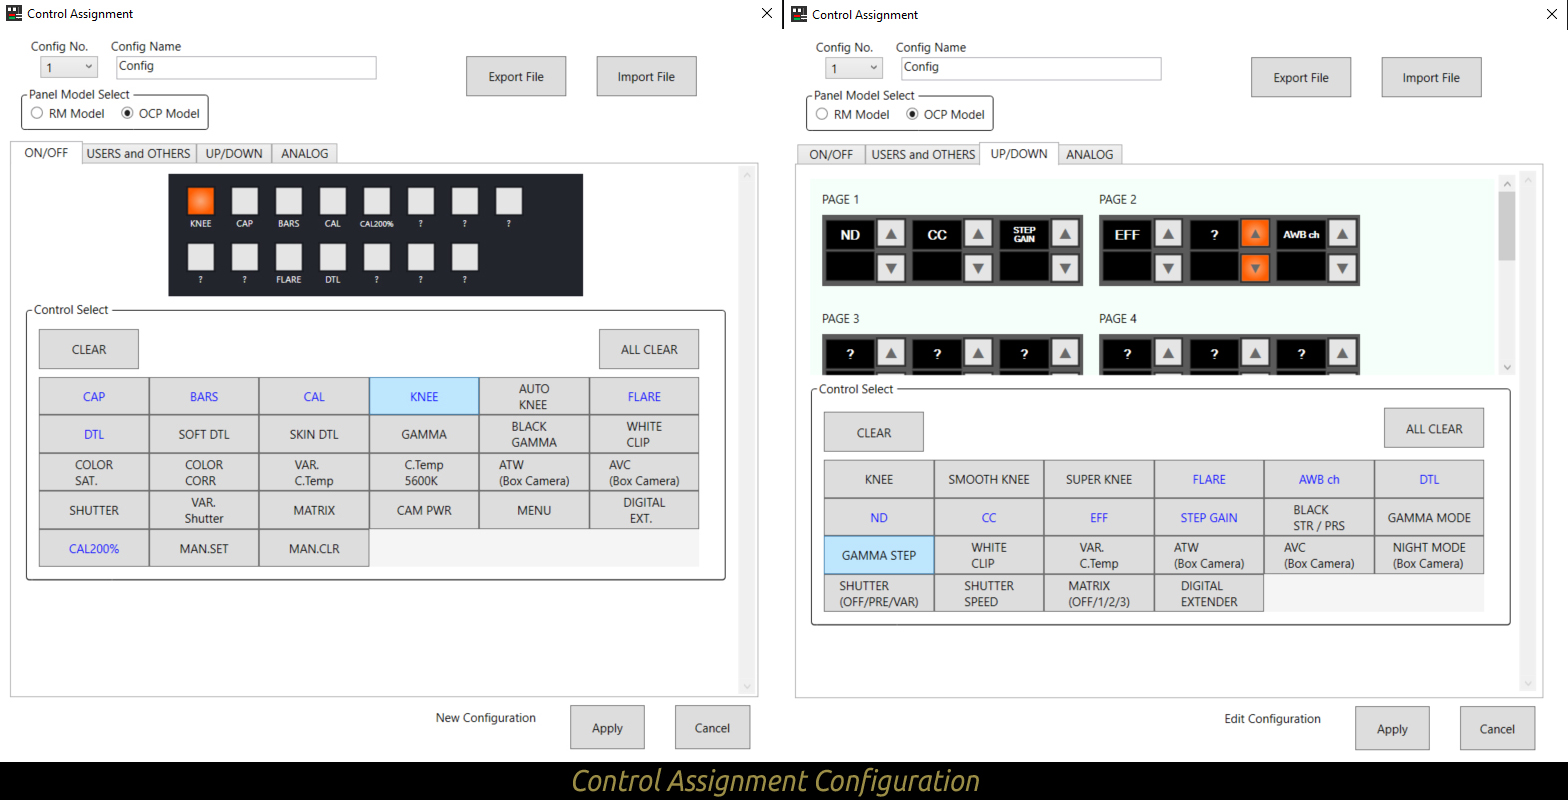 Control Assignment Configuration